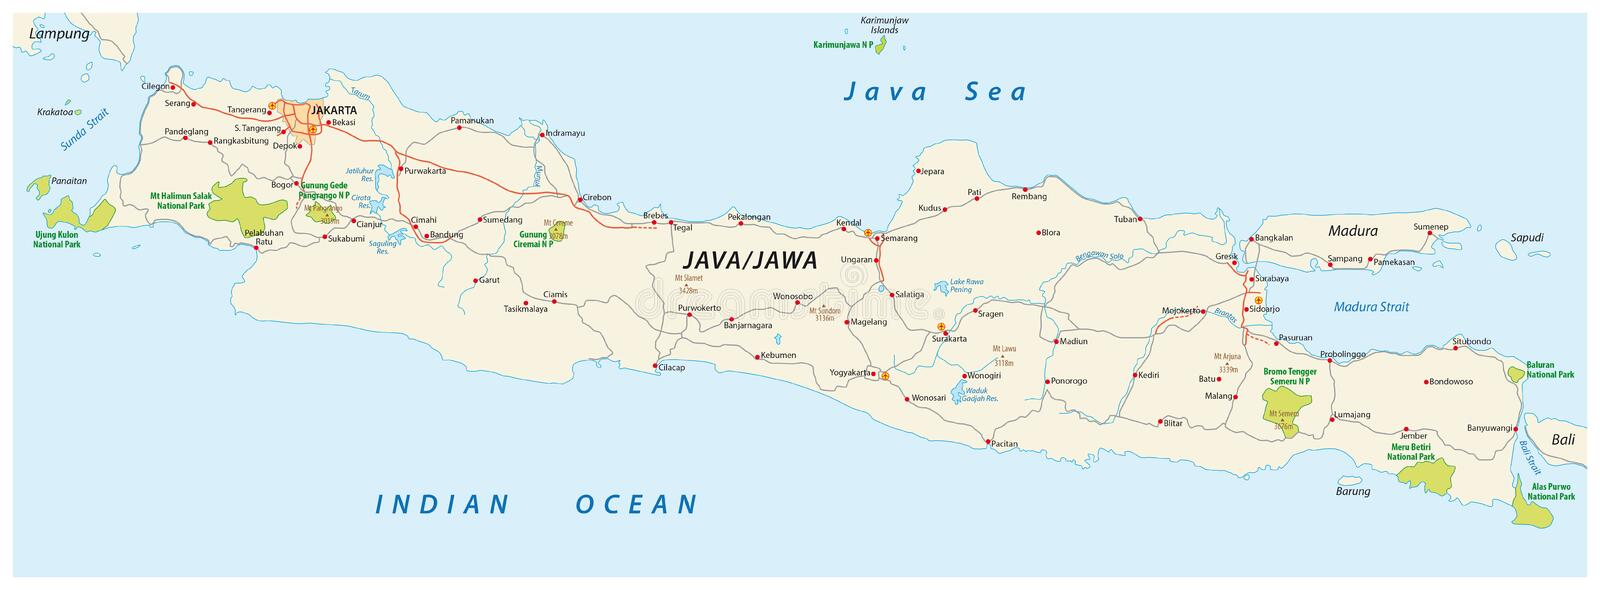 Java road and national park map indonesia stock illustration download java road and national park map indonesia stock illustration illustration of vector gumiabroncs Choice Image